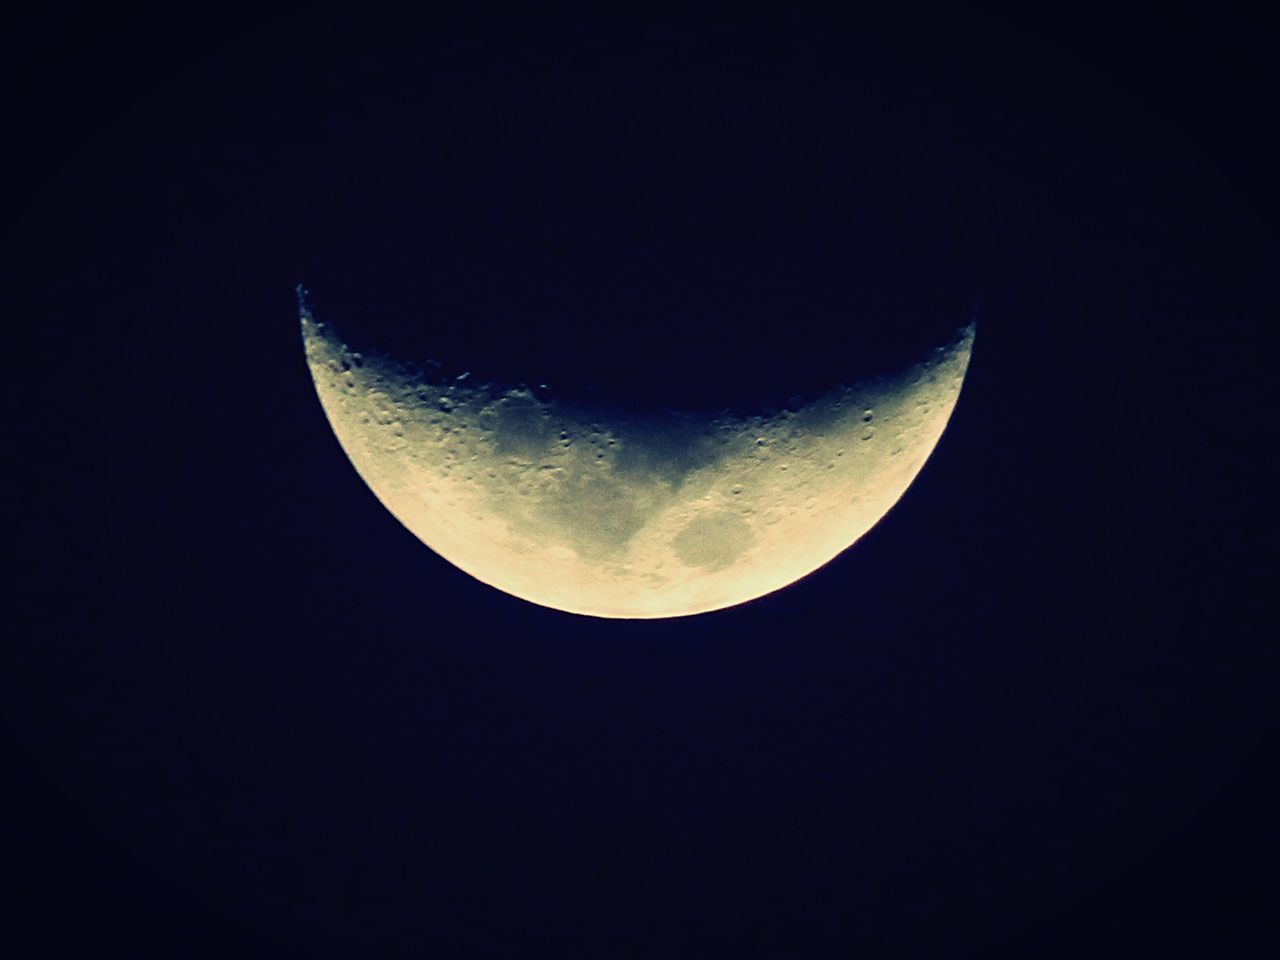 moon, astronomy, night, moon surface, beauty in nature, half moon, planetary moon, nature, majestic, copy space, scenics, tranquility, crescent, tranquil scene, clear sky, no people, low angle view, space exploration, space, outdoors, sky, close-up